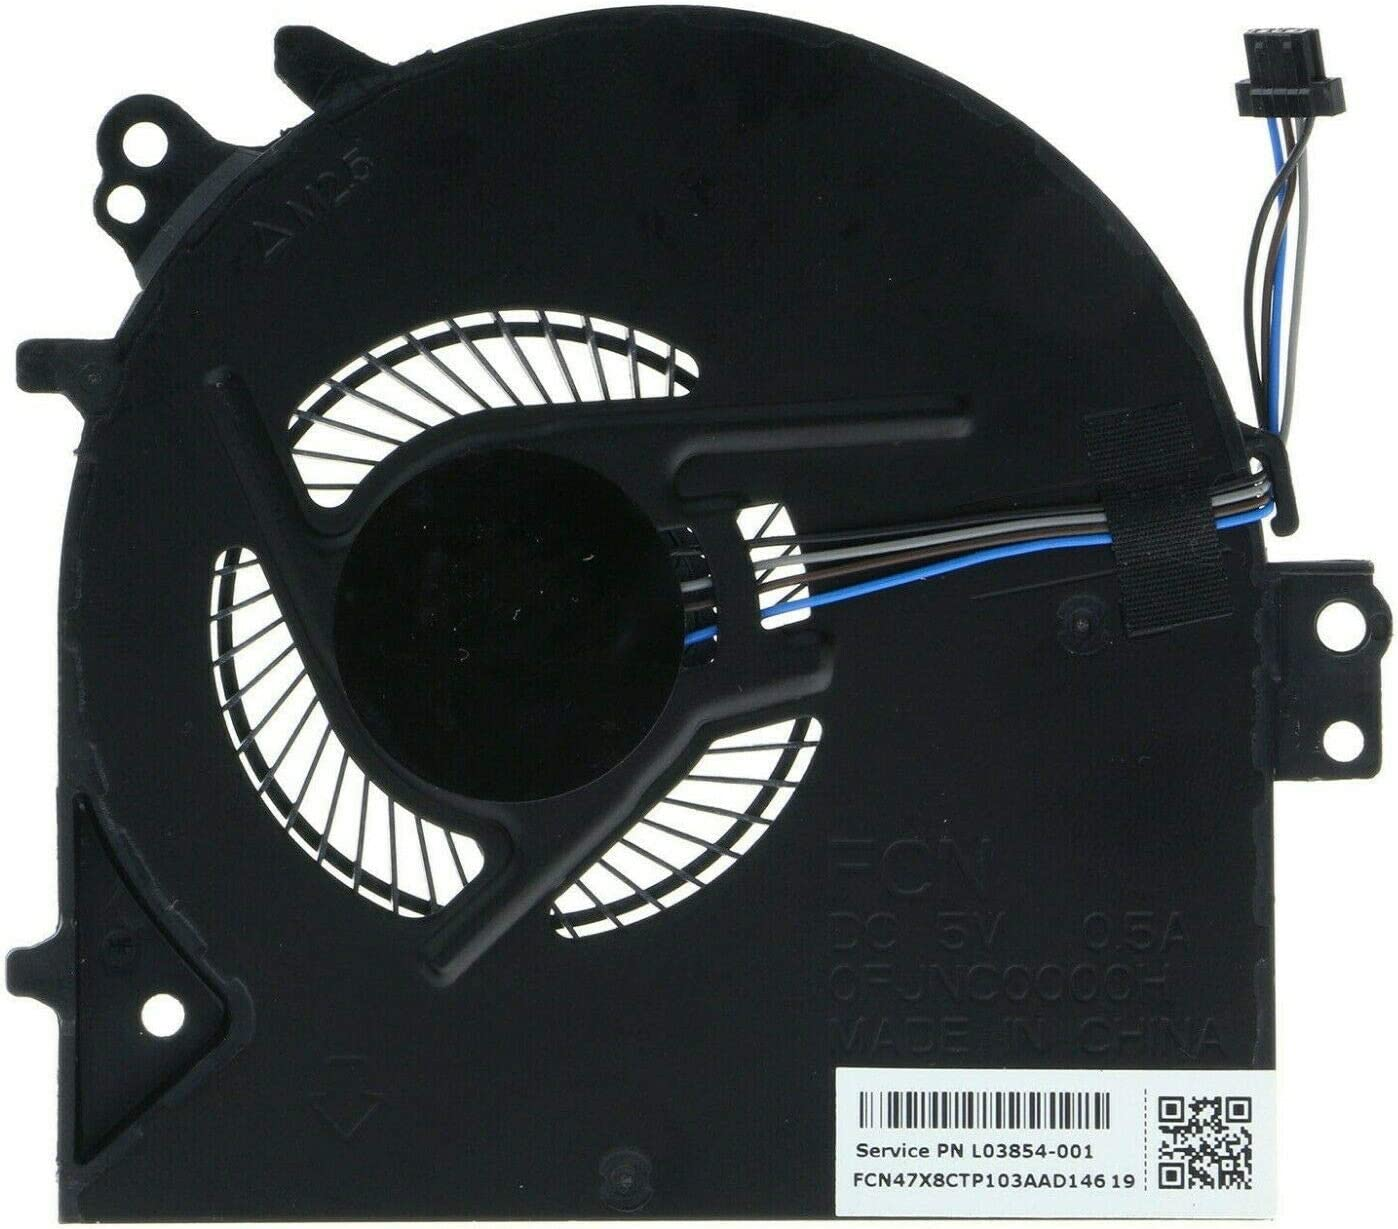 Replacement CPU Cooling Fan Compatible with HP Probook 450 G5, Probook 455 G5 Laptop P/N: L03854-001